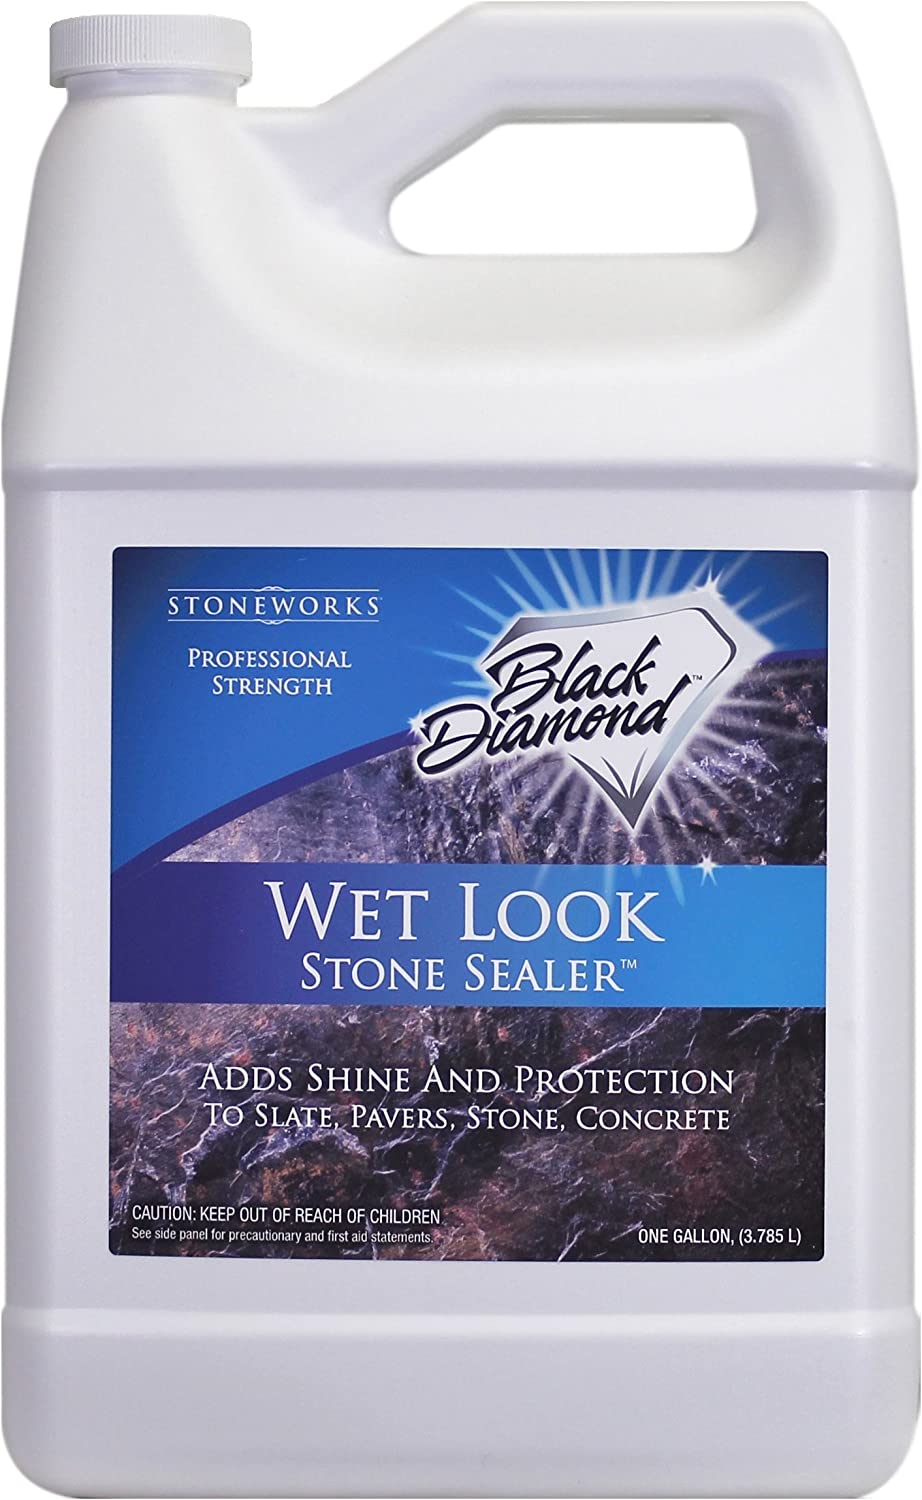 Black diamond Natural stone sealer